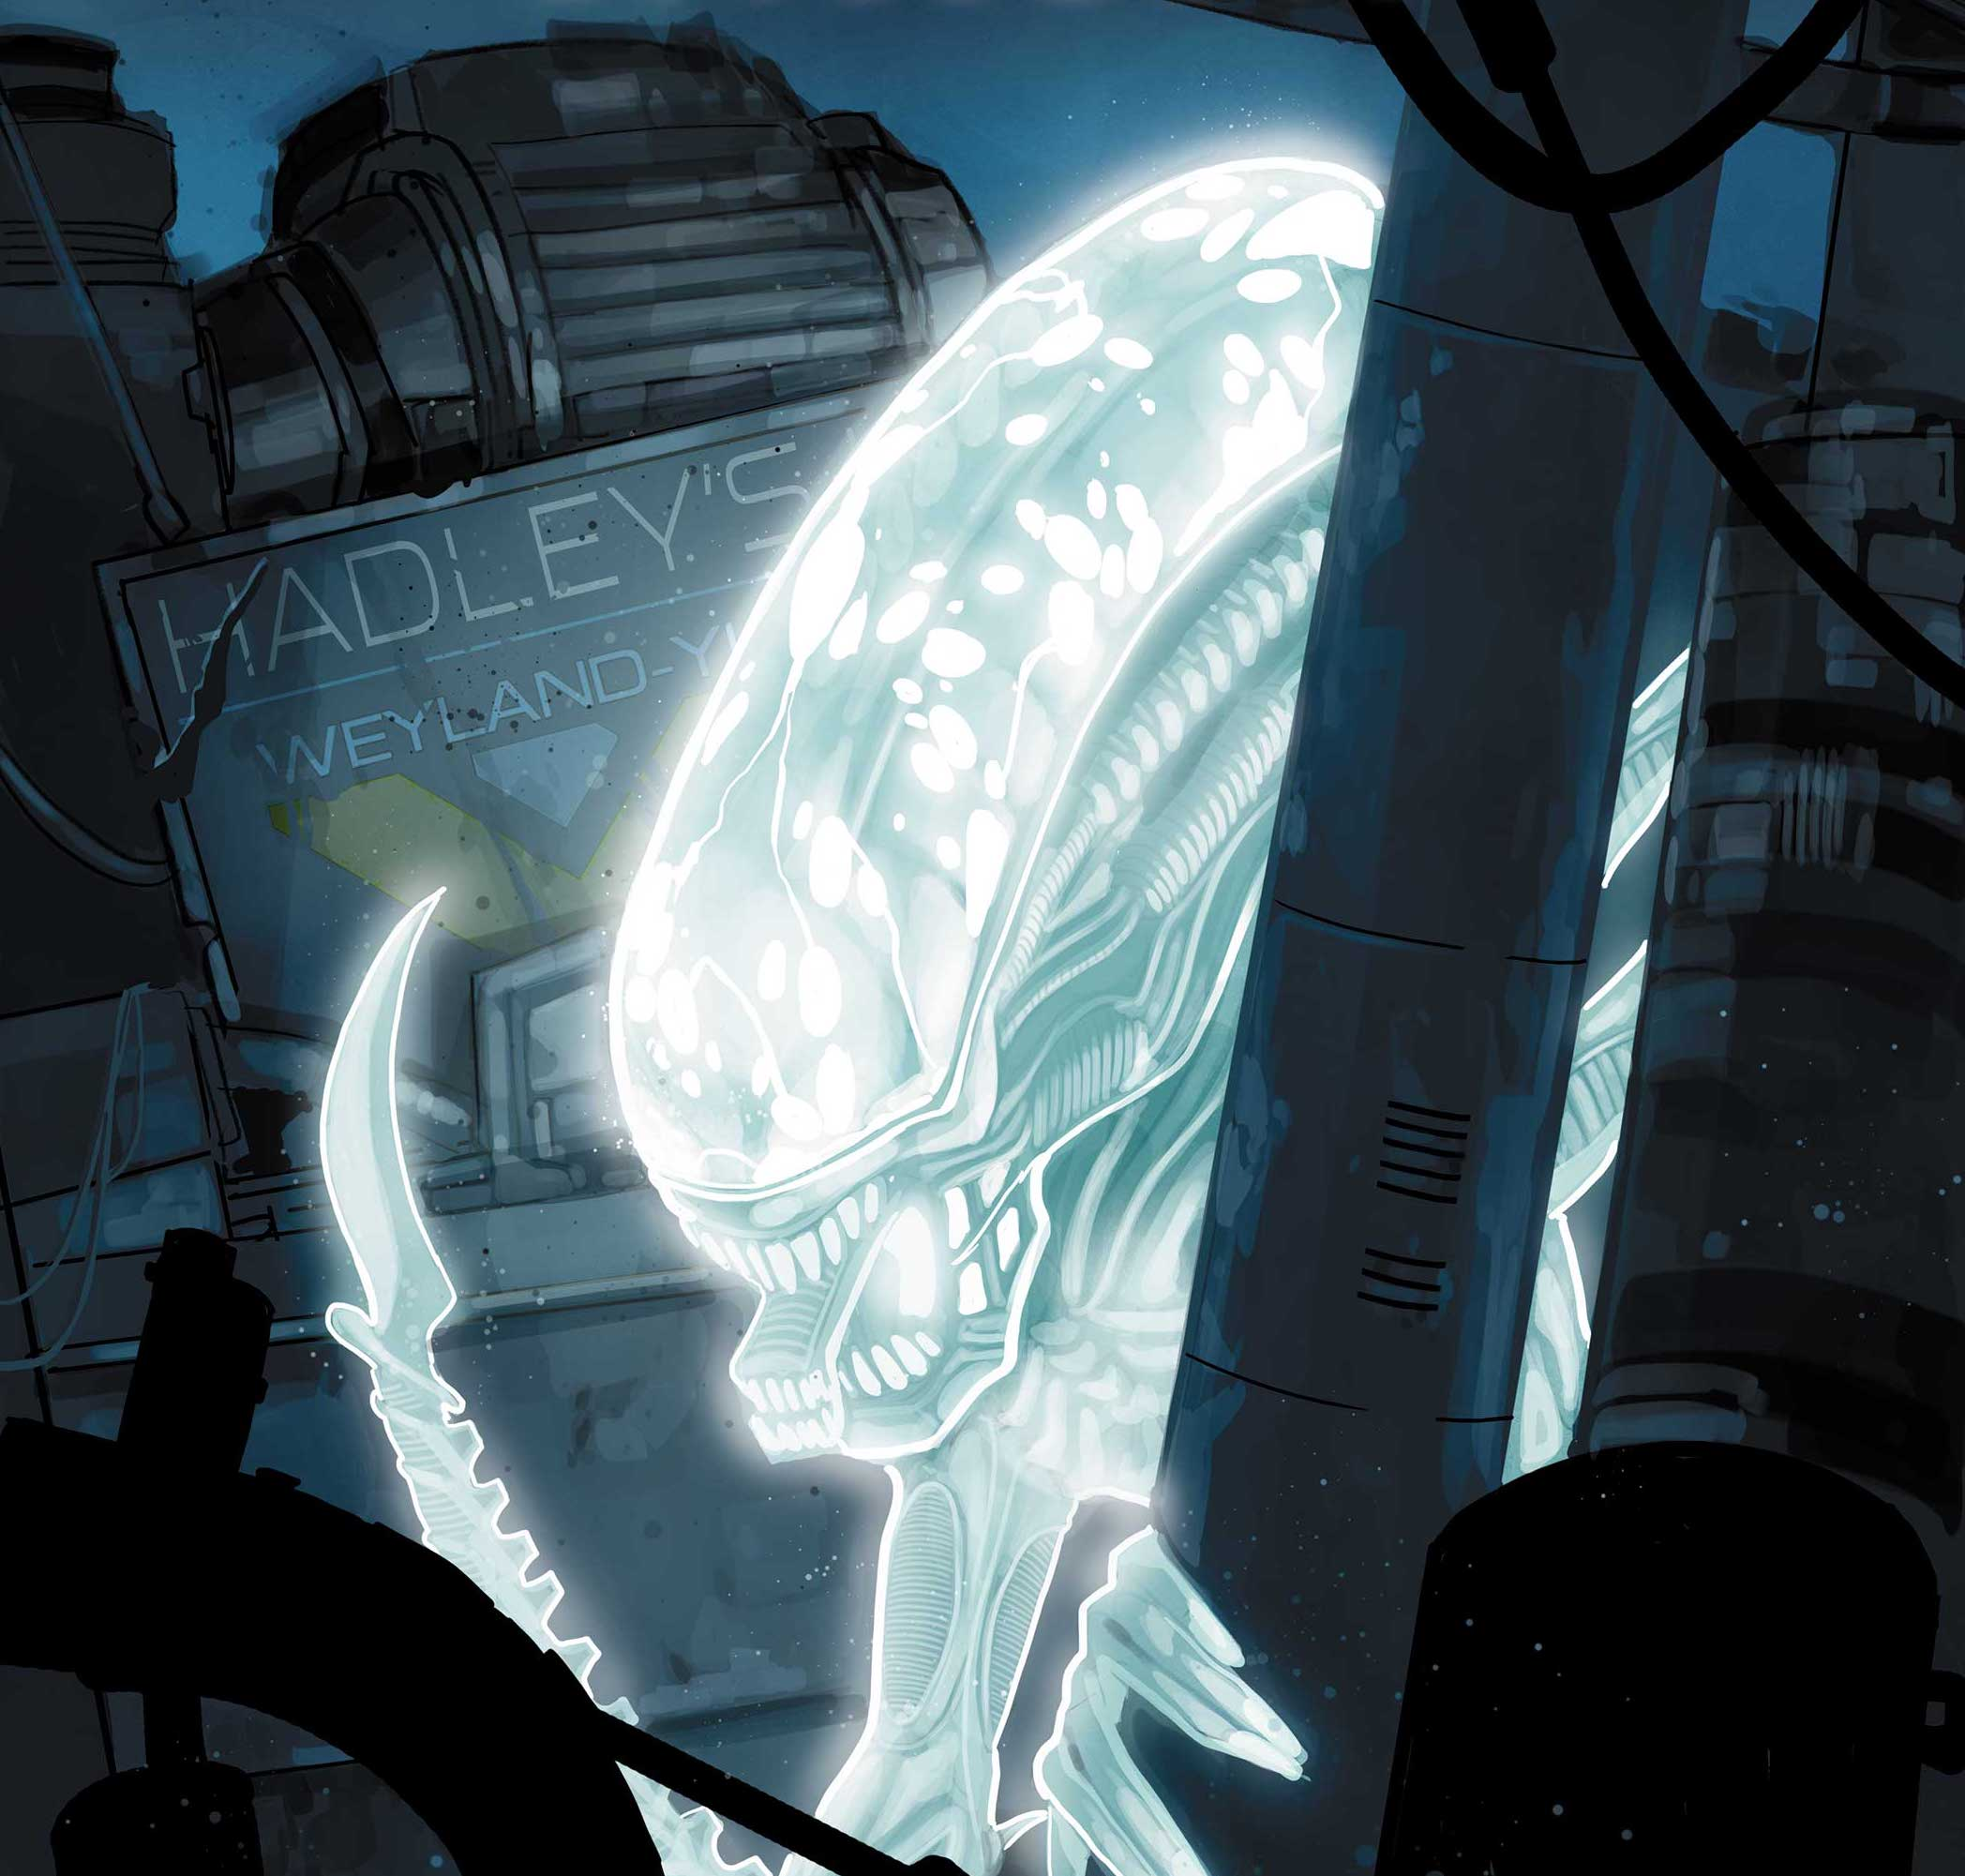 'Aliens: Aftermath' #1 offers action, thrills, and dread